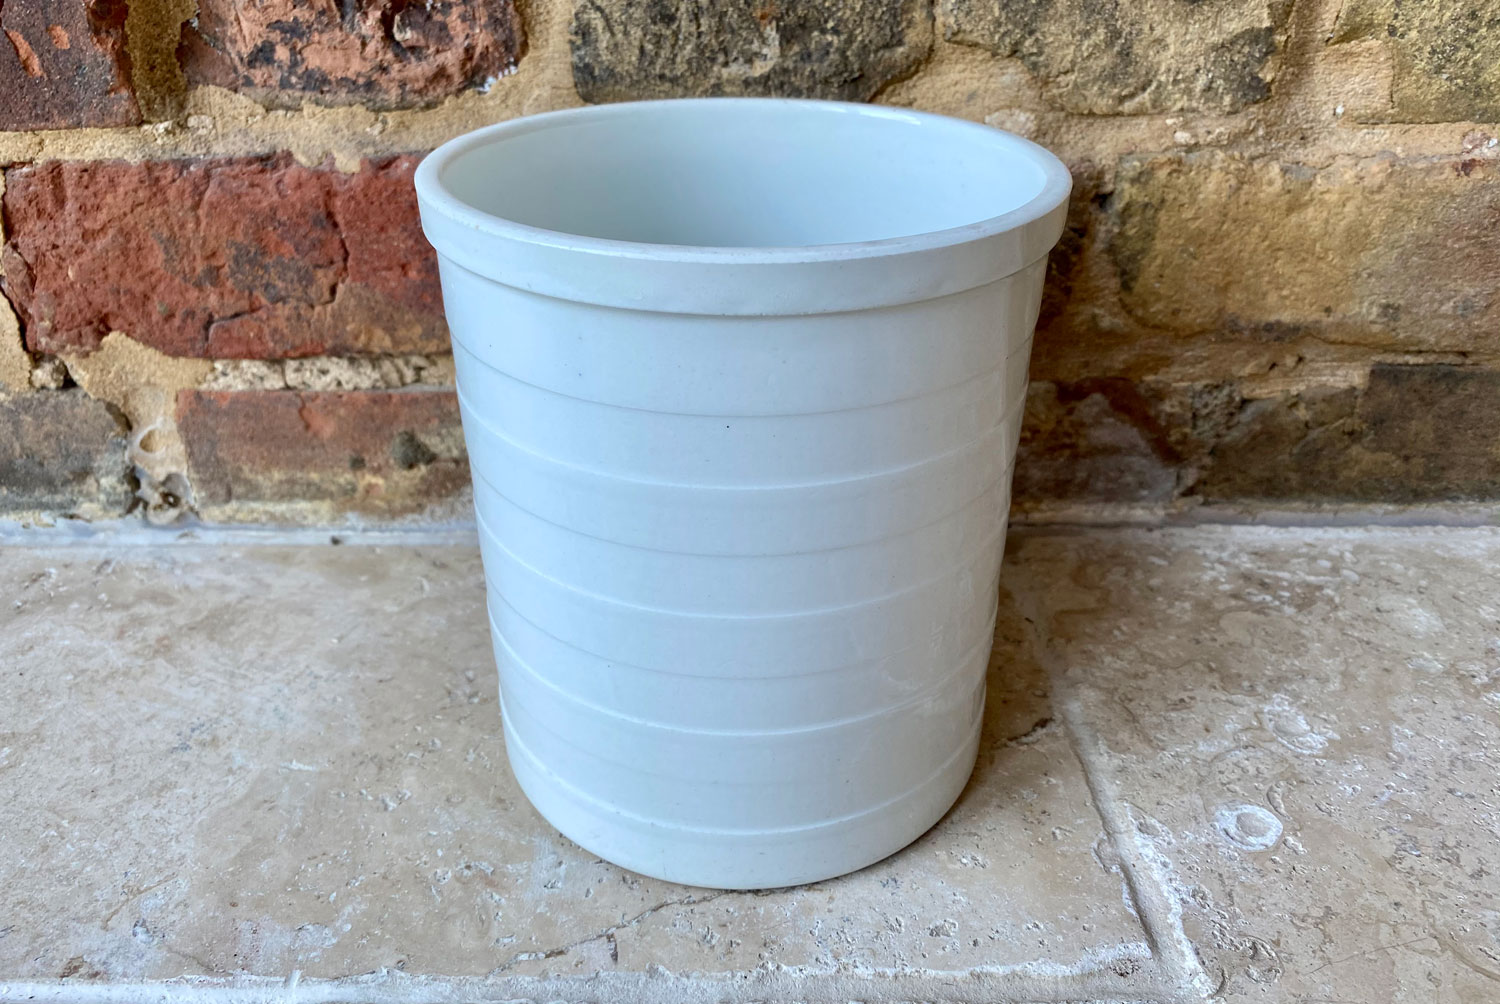 antique maling 1920s early 20th century banded white ironstone rare sanitary brush holder pot canister